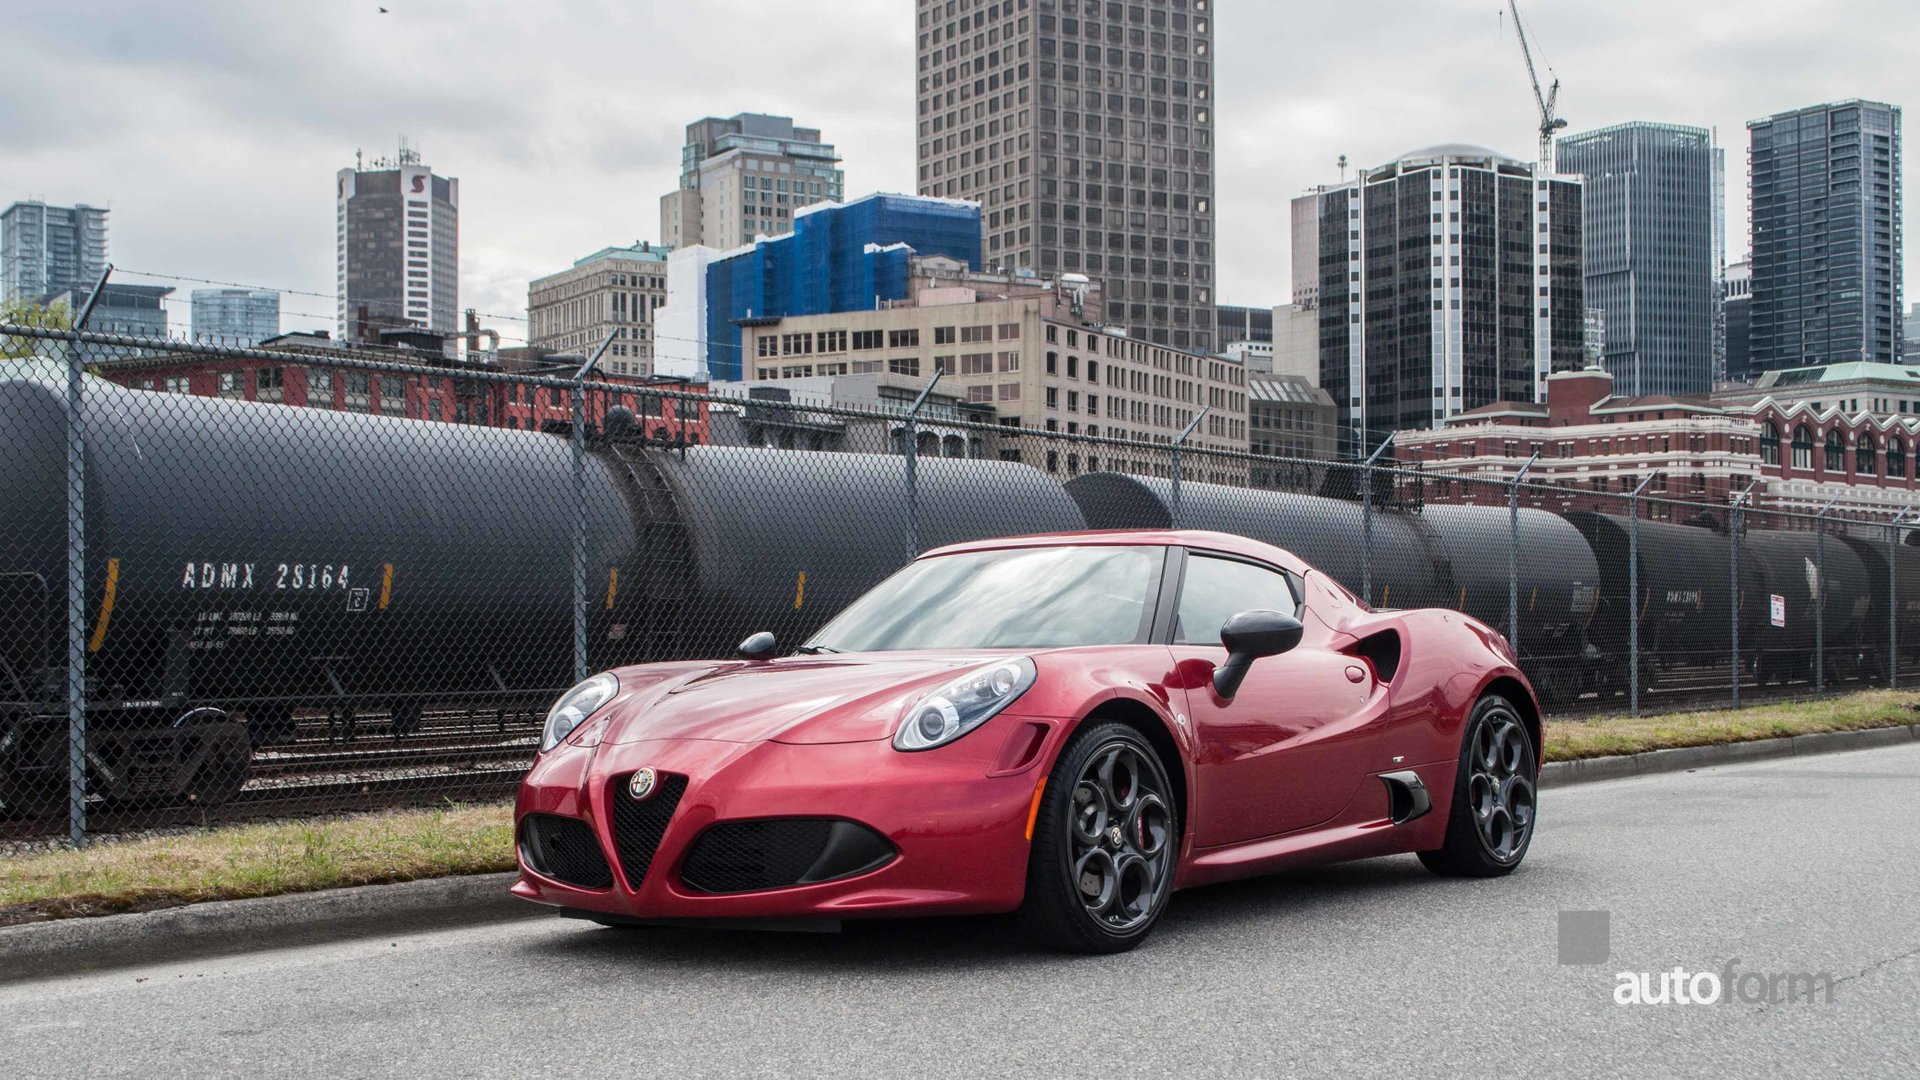 2015 alfa romeo 4c autoform. Black Bedroom Furniture Sets. Home Design Ideas